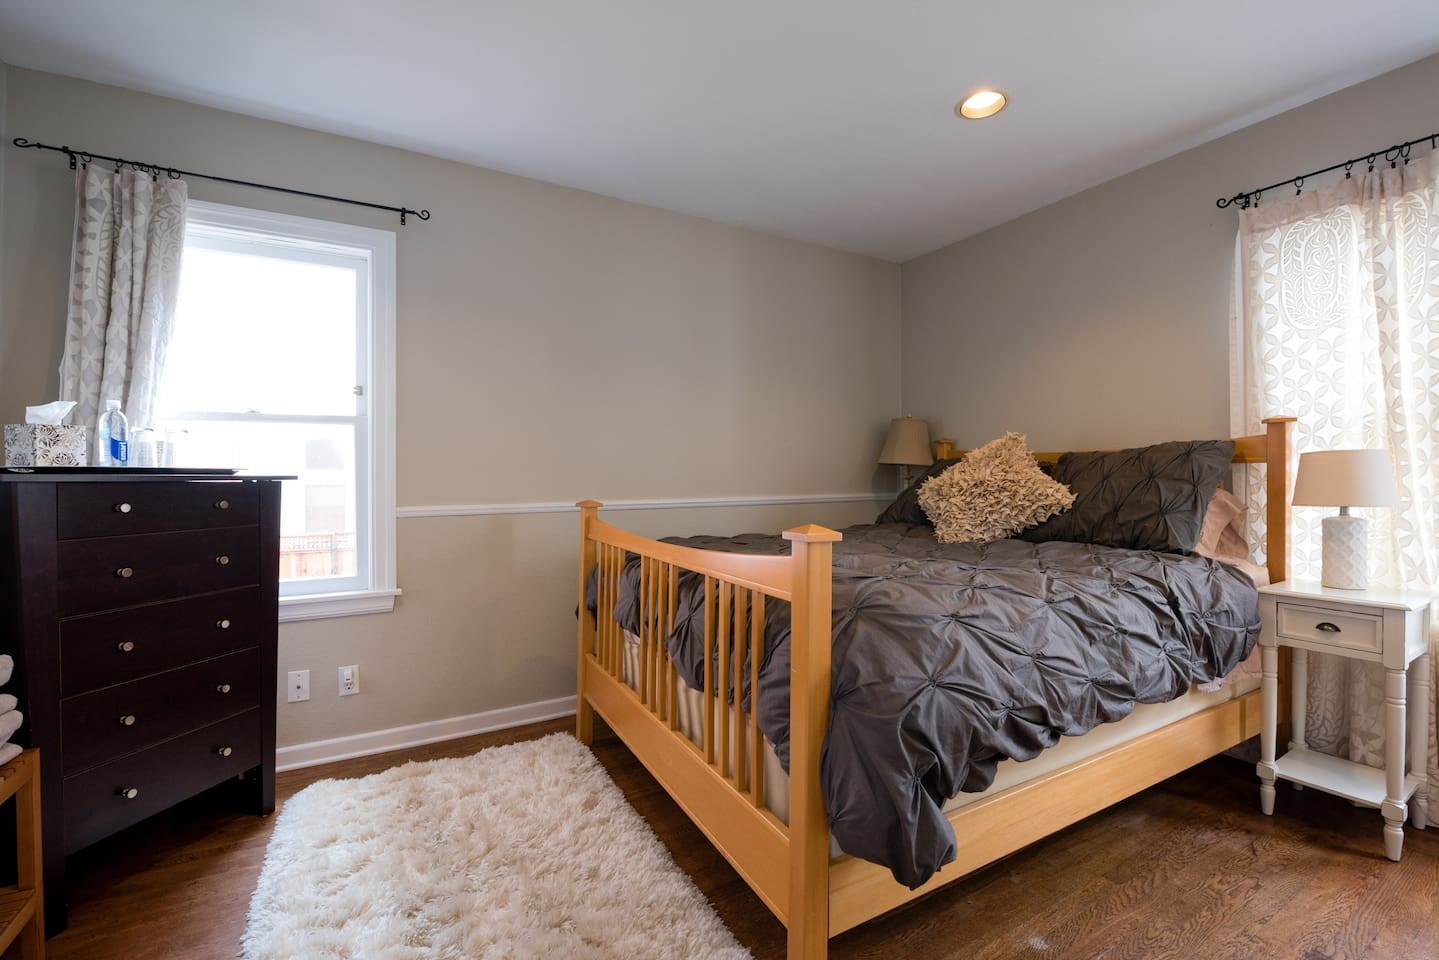 Comfy bed, two side tables with lamps, dresser, large closet!